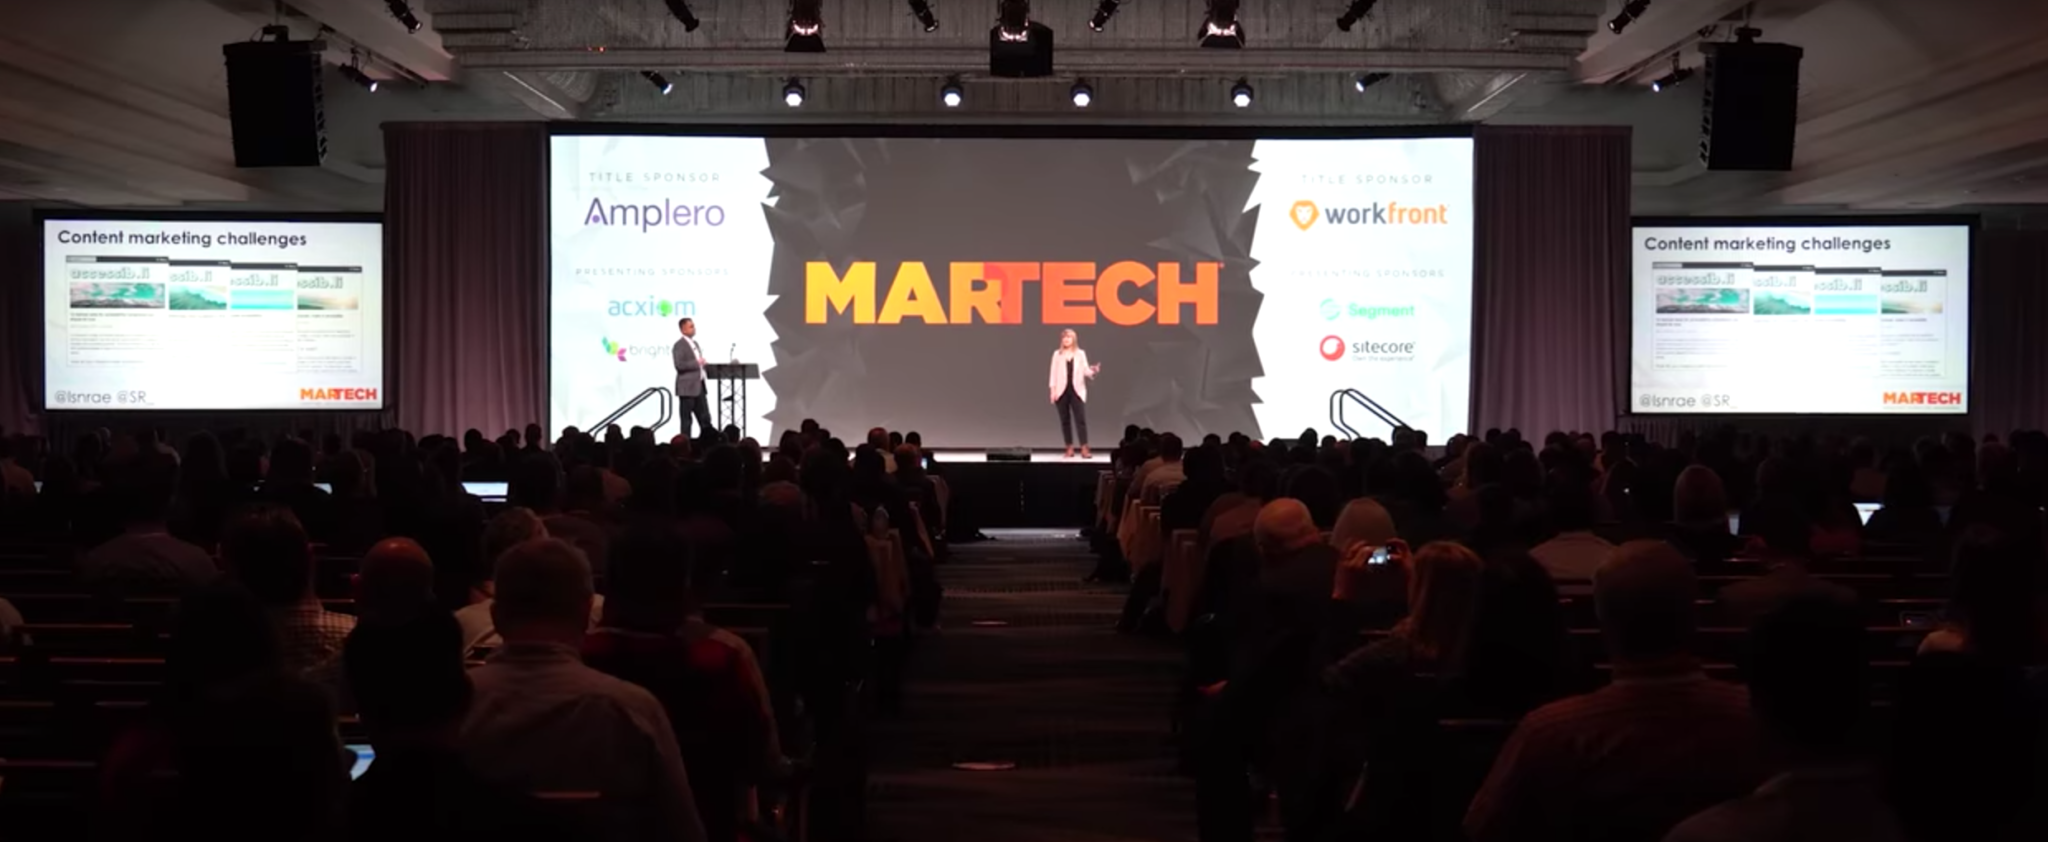 MarTech 2018 Marketing Conferences